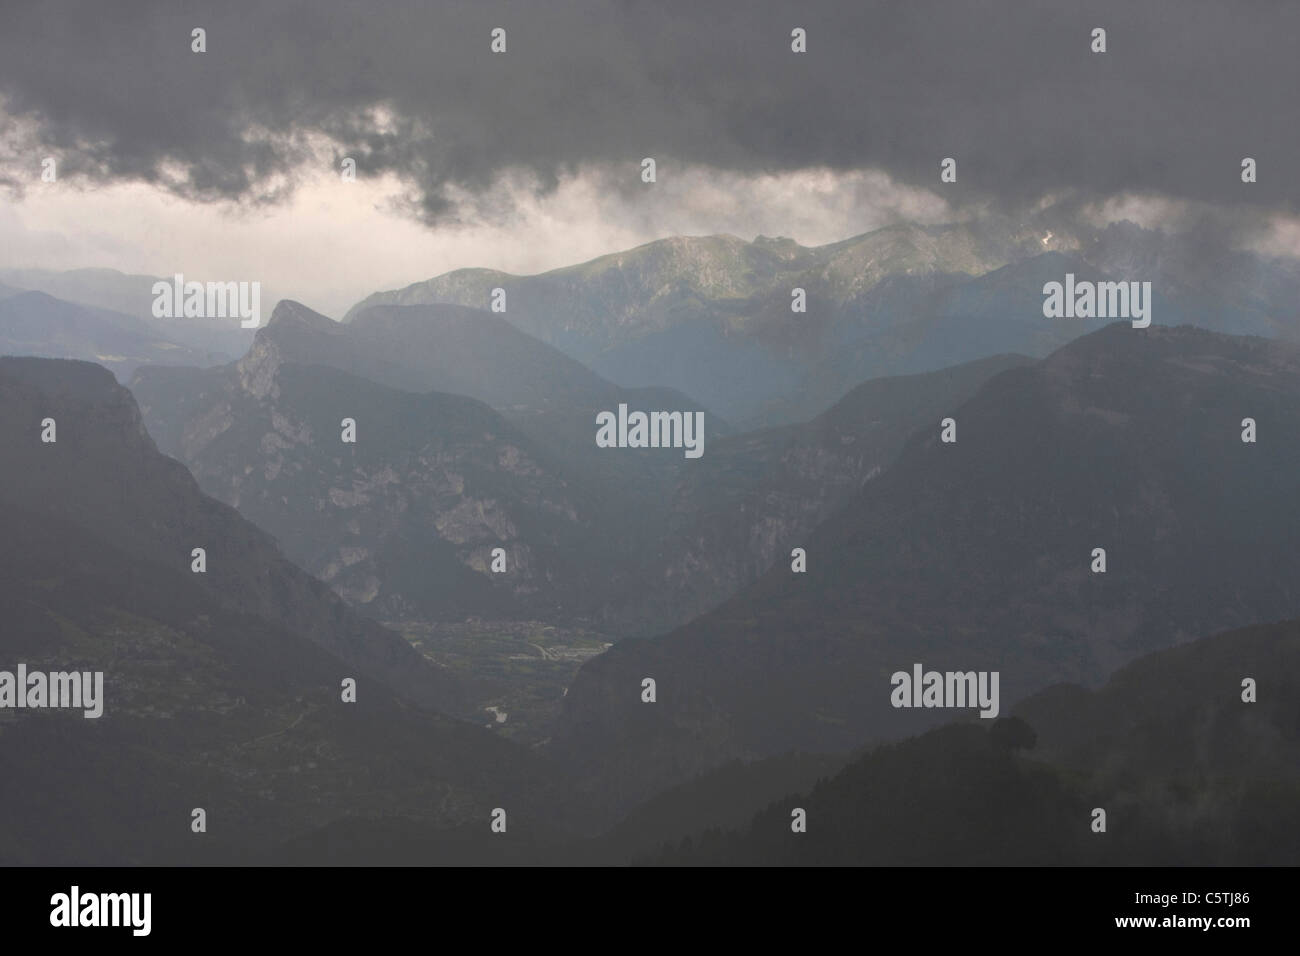 Italy, Dolomites, Mountain scenery, Stormy atmosphere - Stock Image